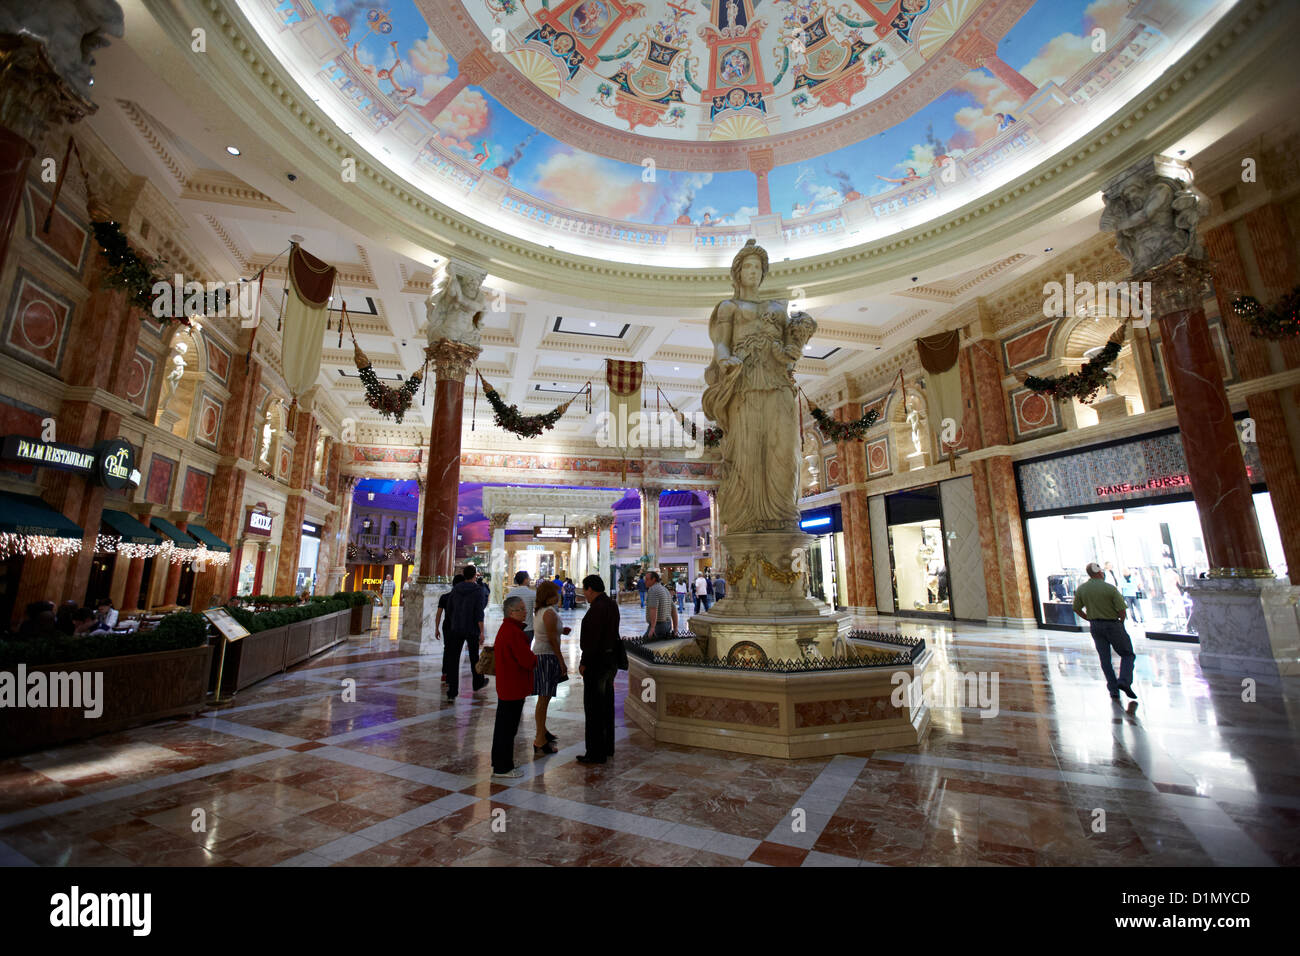 Stock photo foyer and entrance to the forum shops at caesars palace luxury hotel and casino las vegas nevada usa